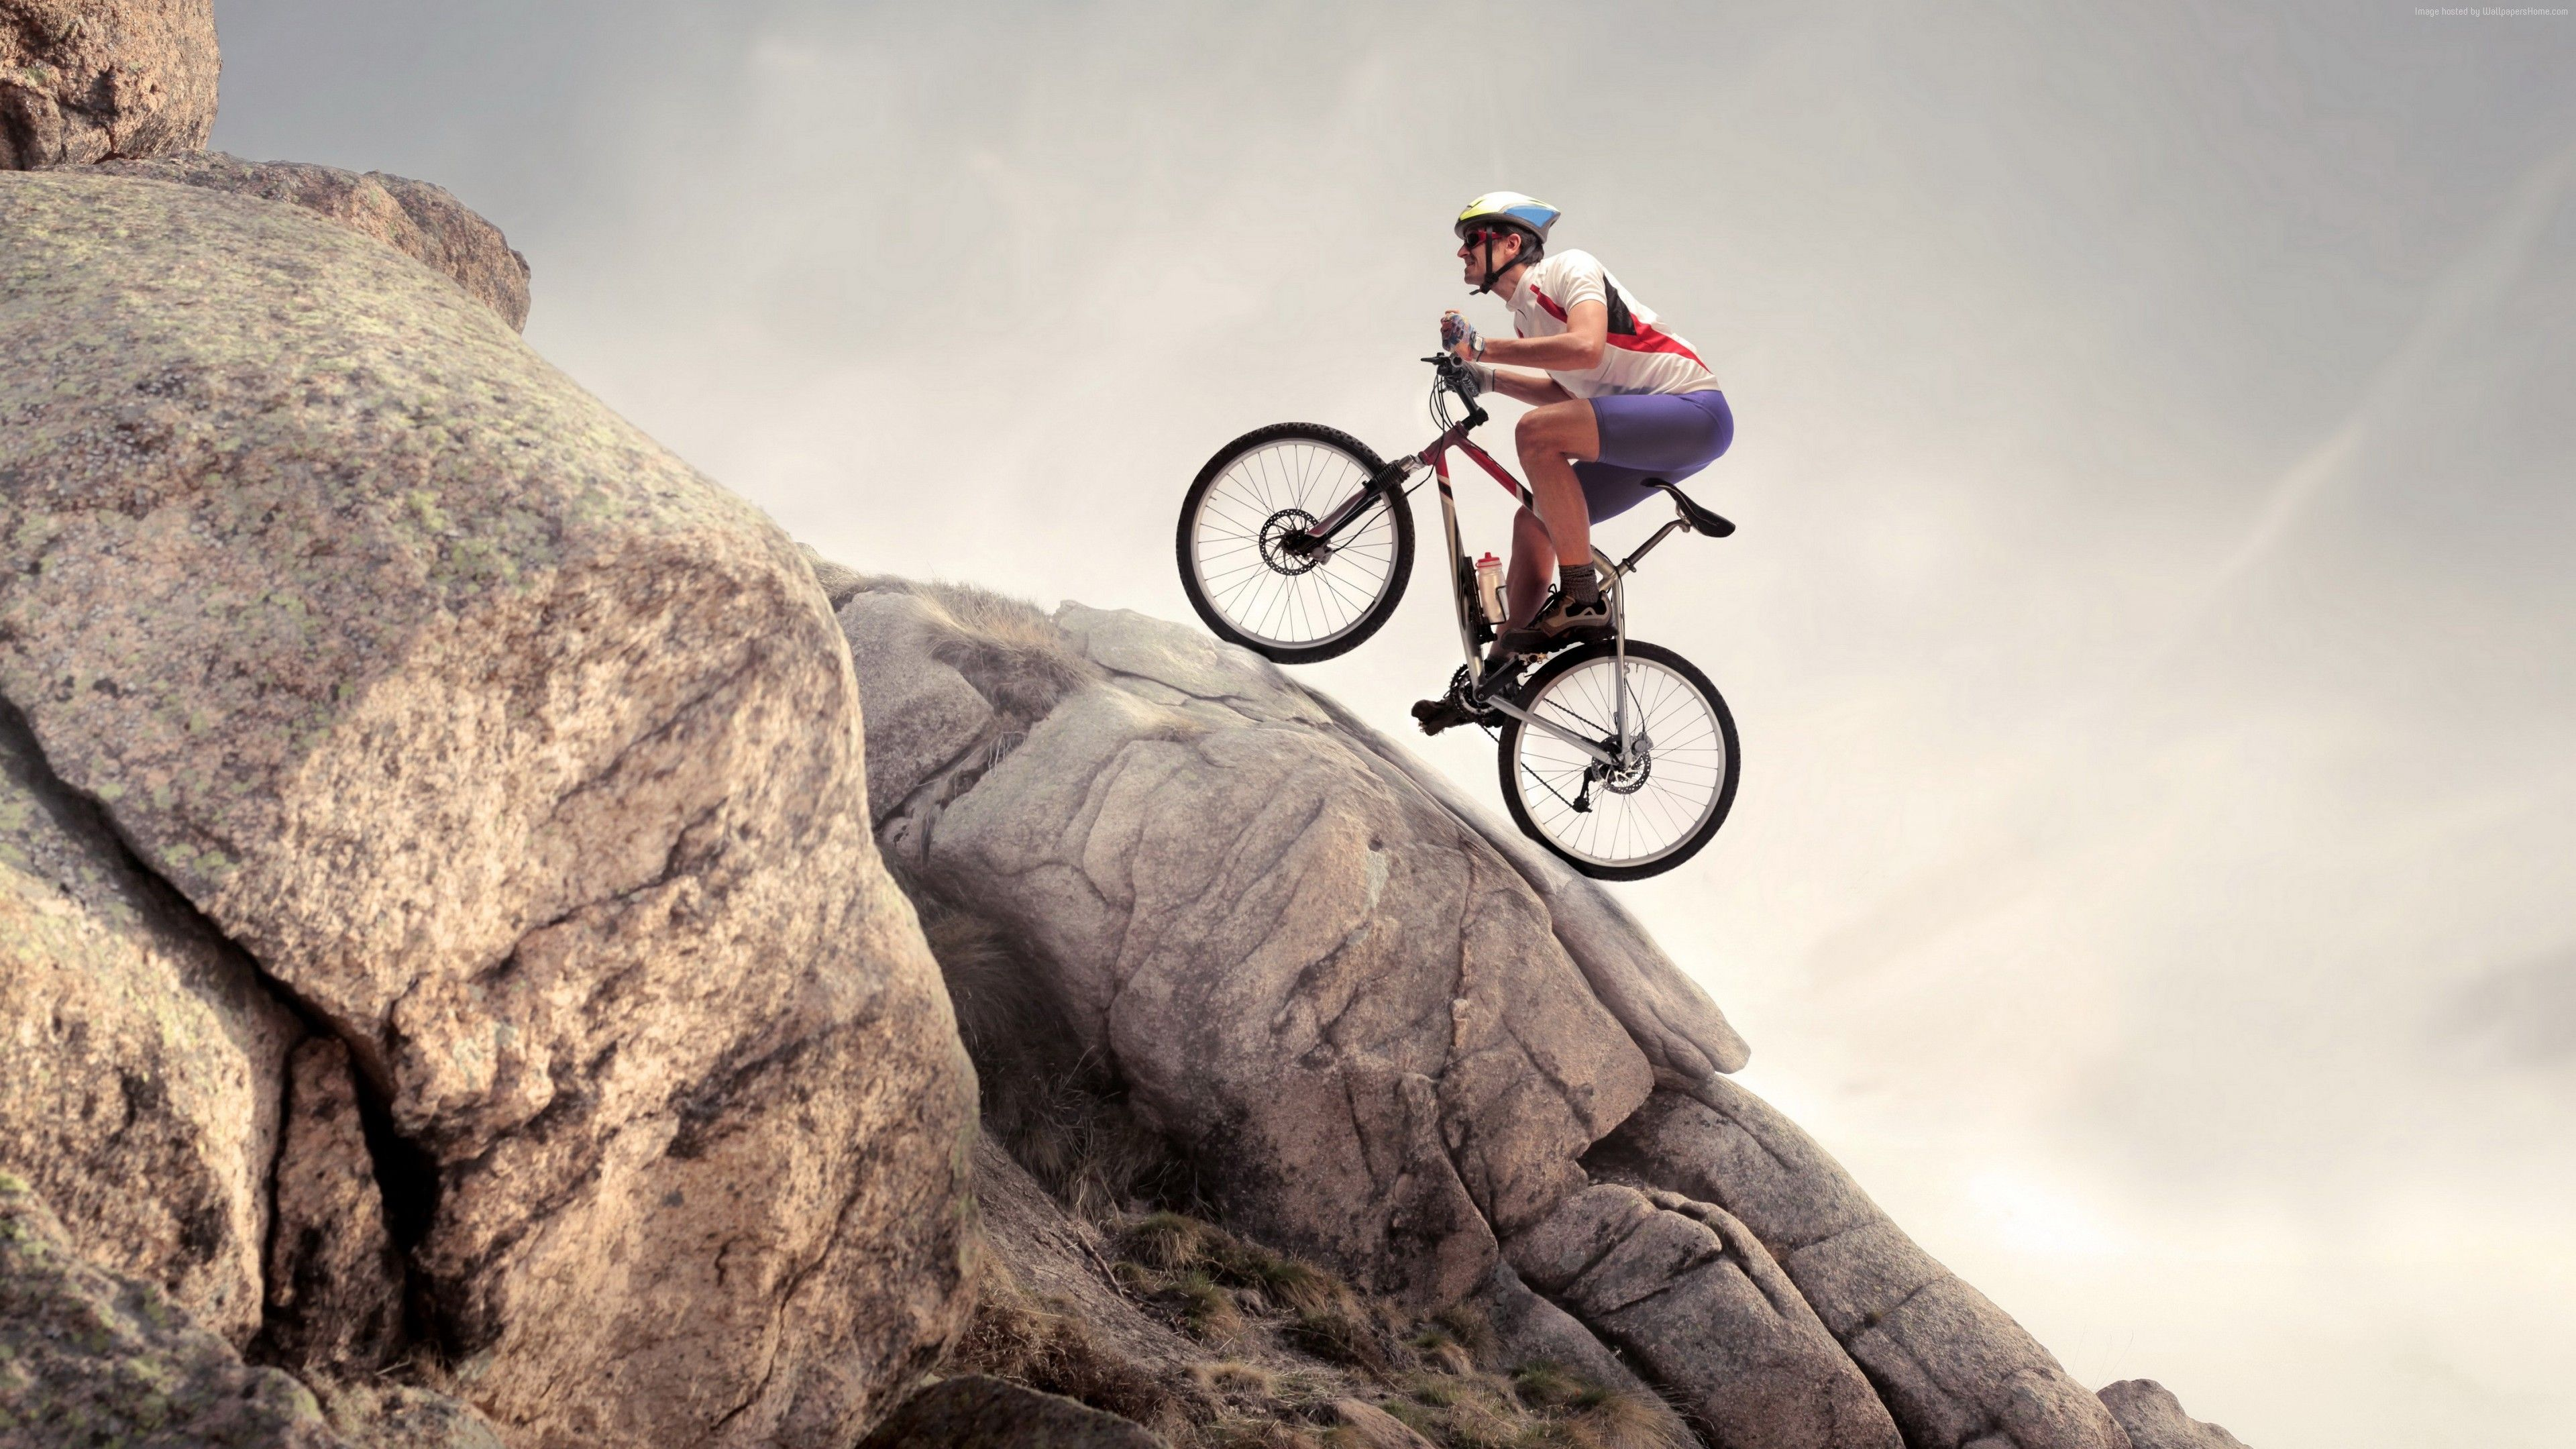 Wallpaper Rock Climbing Cycle Extreme Sport Http